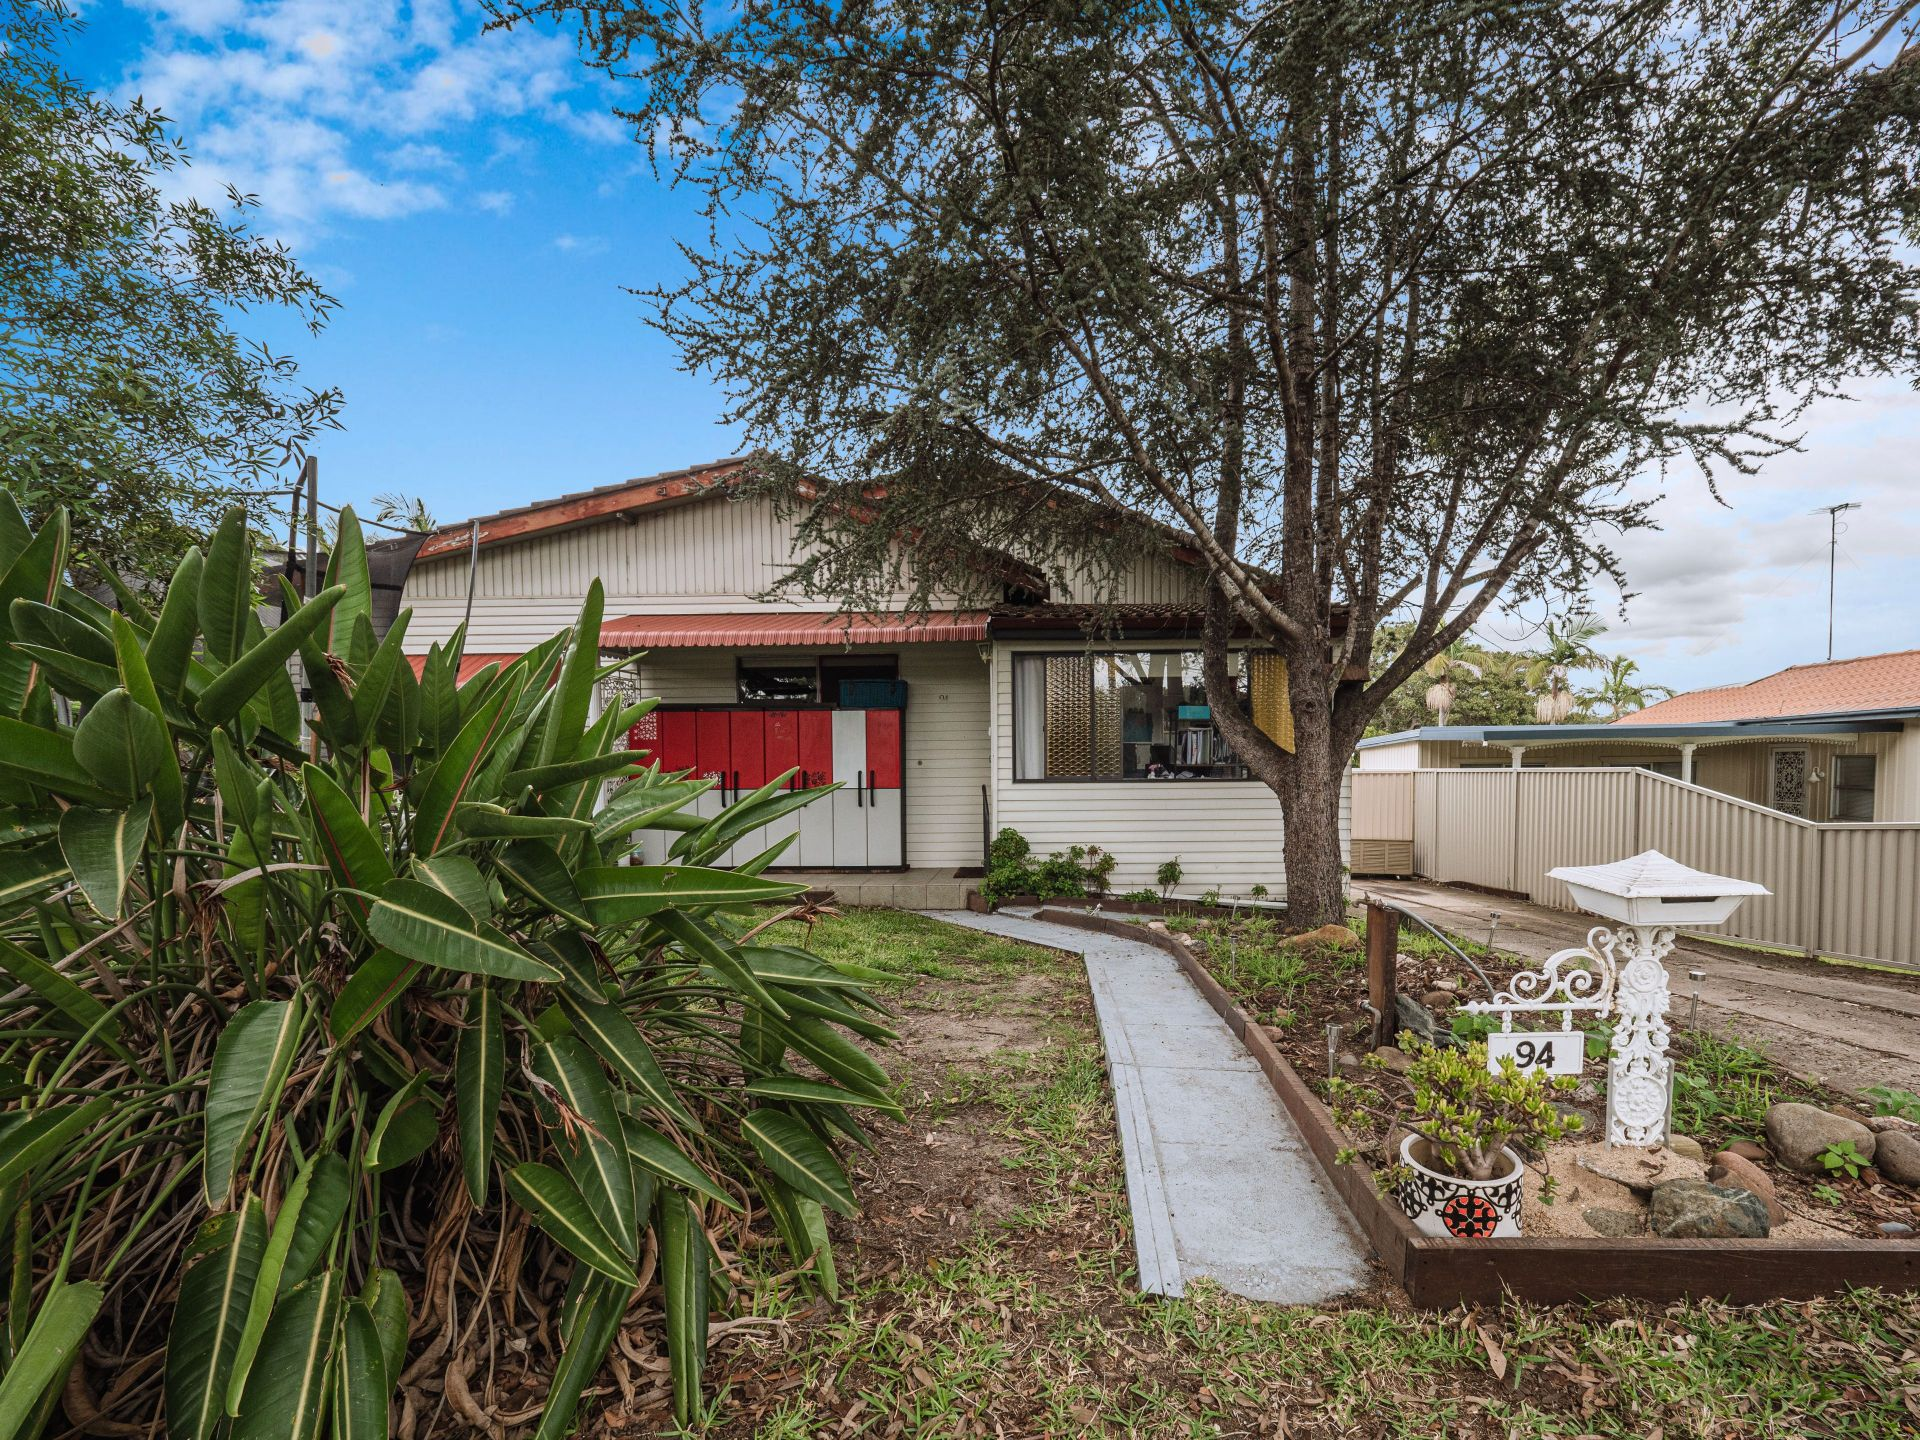 94 Oyster Bay Road, Oyster Bay NSW 2225